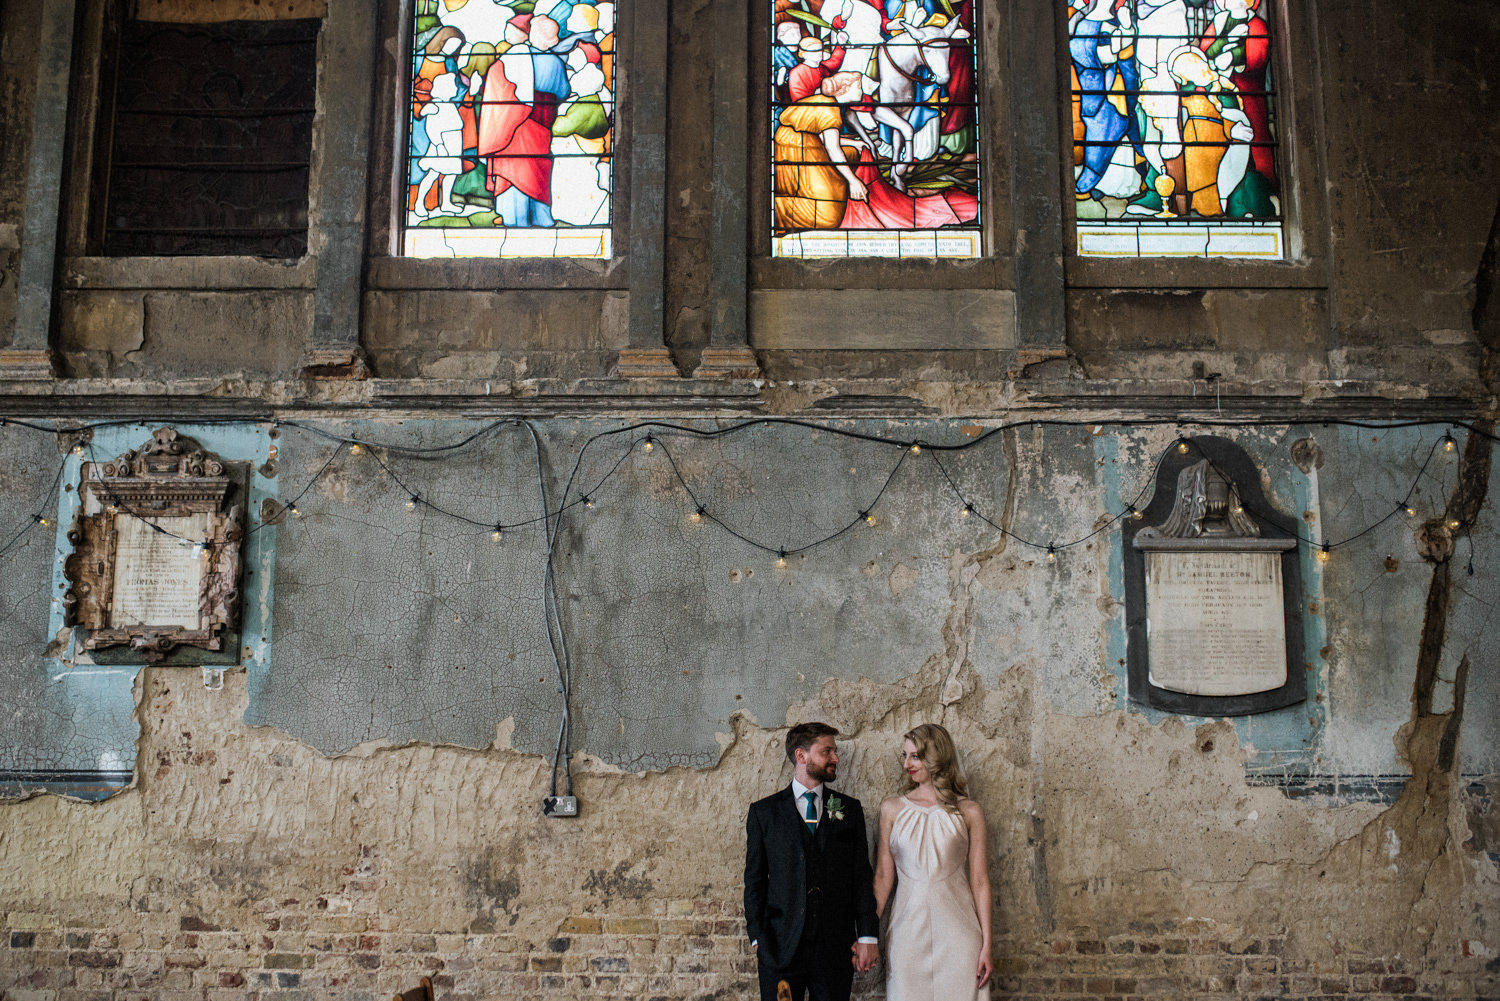 asylum-wedding-photographer-the-peasant-in-clerkenwell-wedding--69.jpg